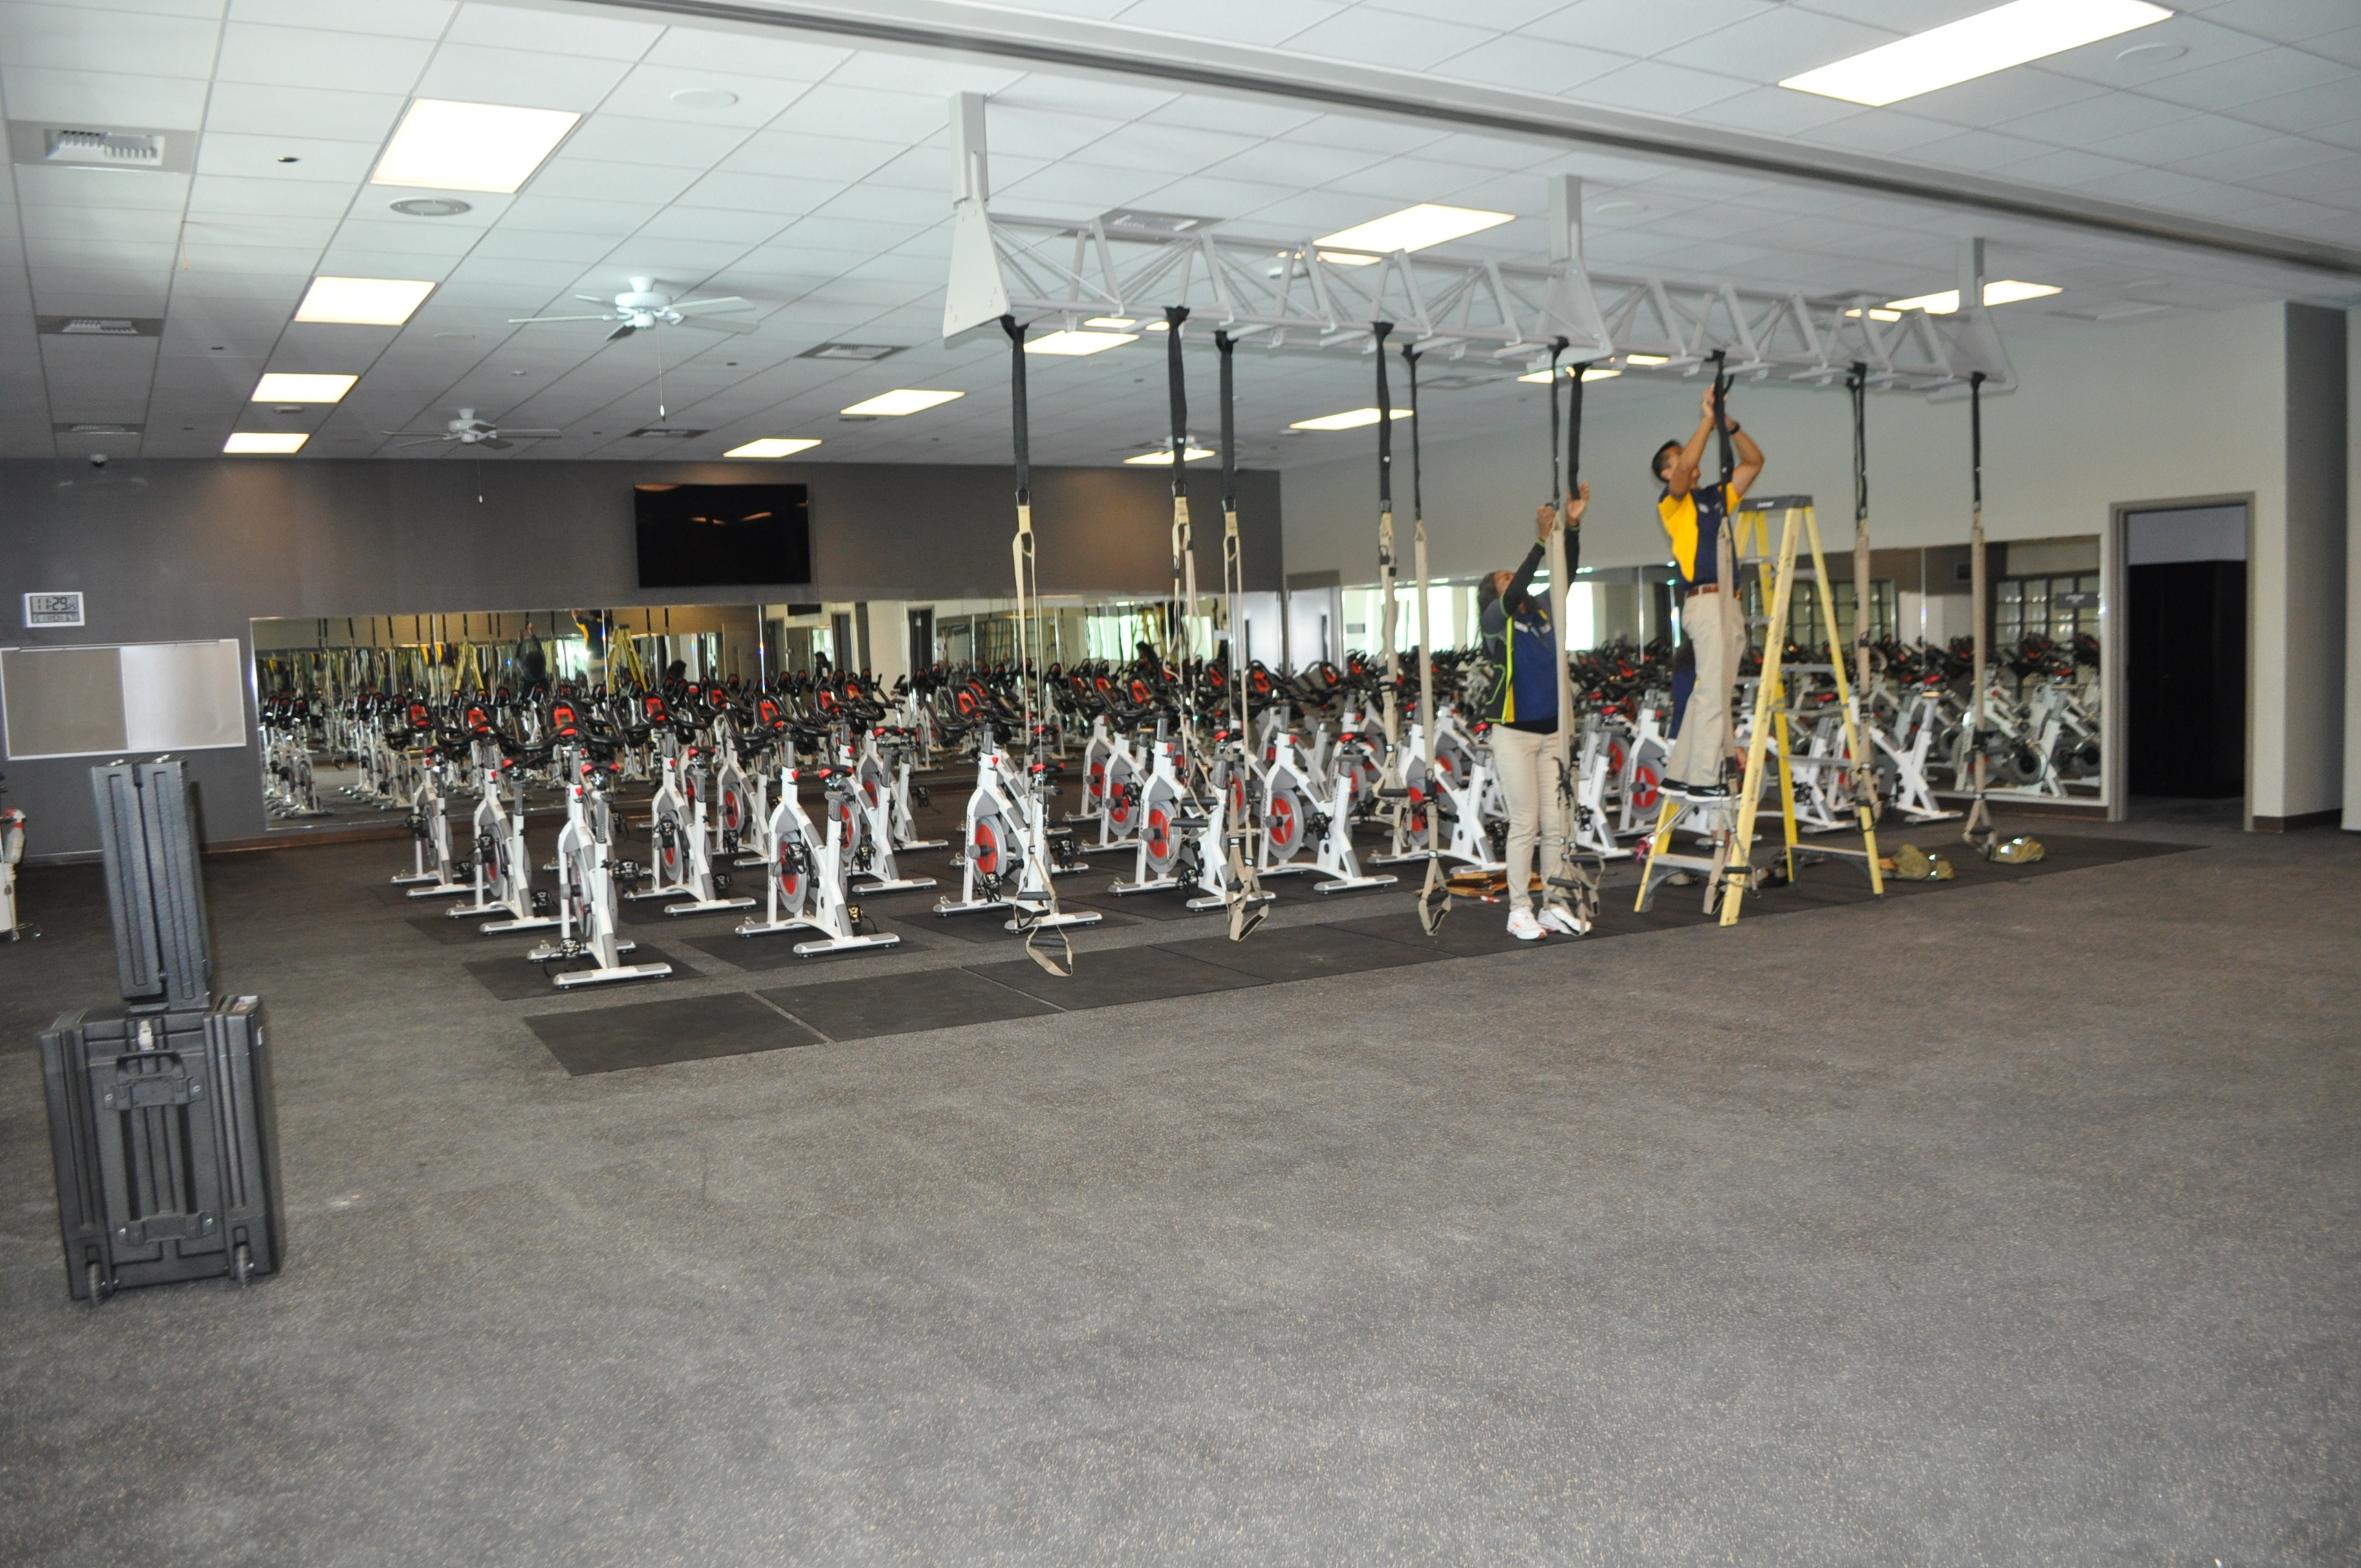 Meeting And Group Exercise Rooms Are Available For Use At The New Facility